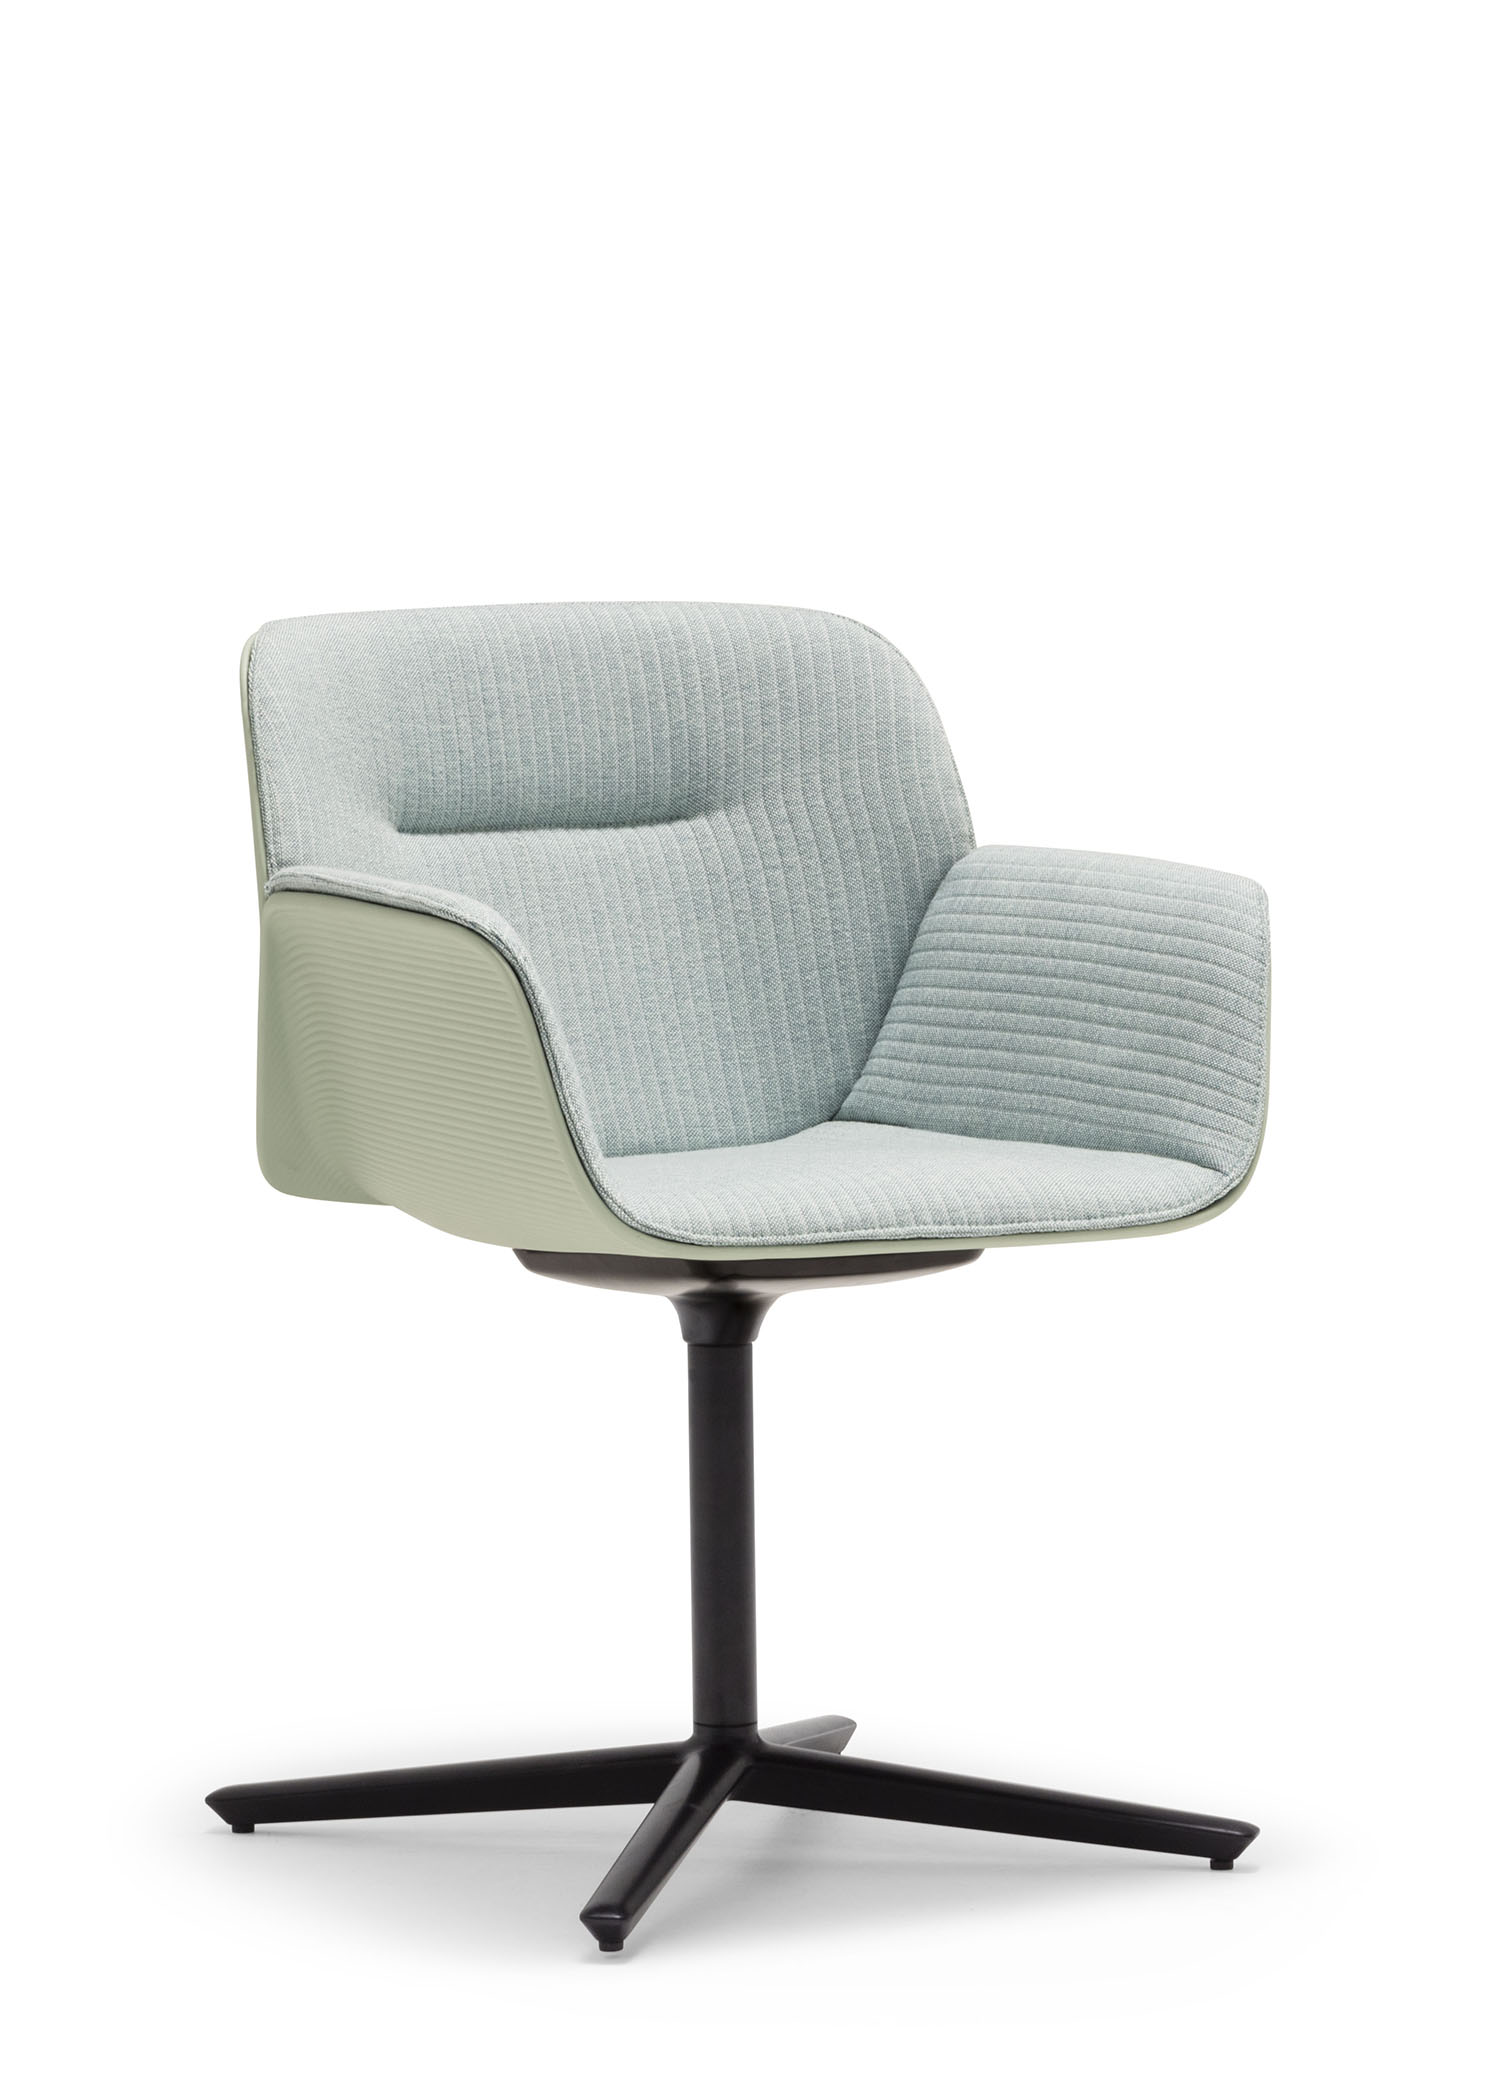 Nuez Chair by Patricia Urquiola for Andreu World | Yellowtrace